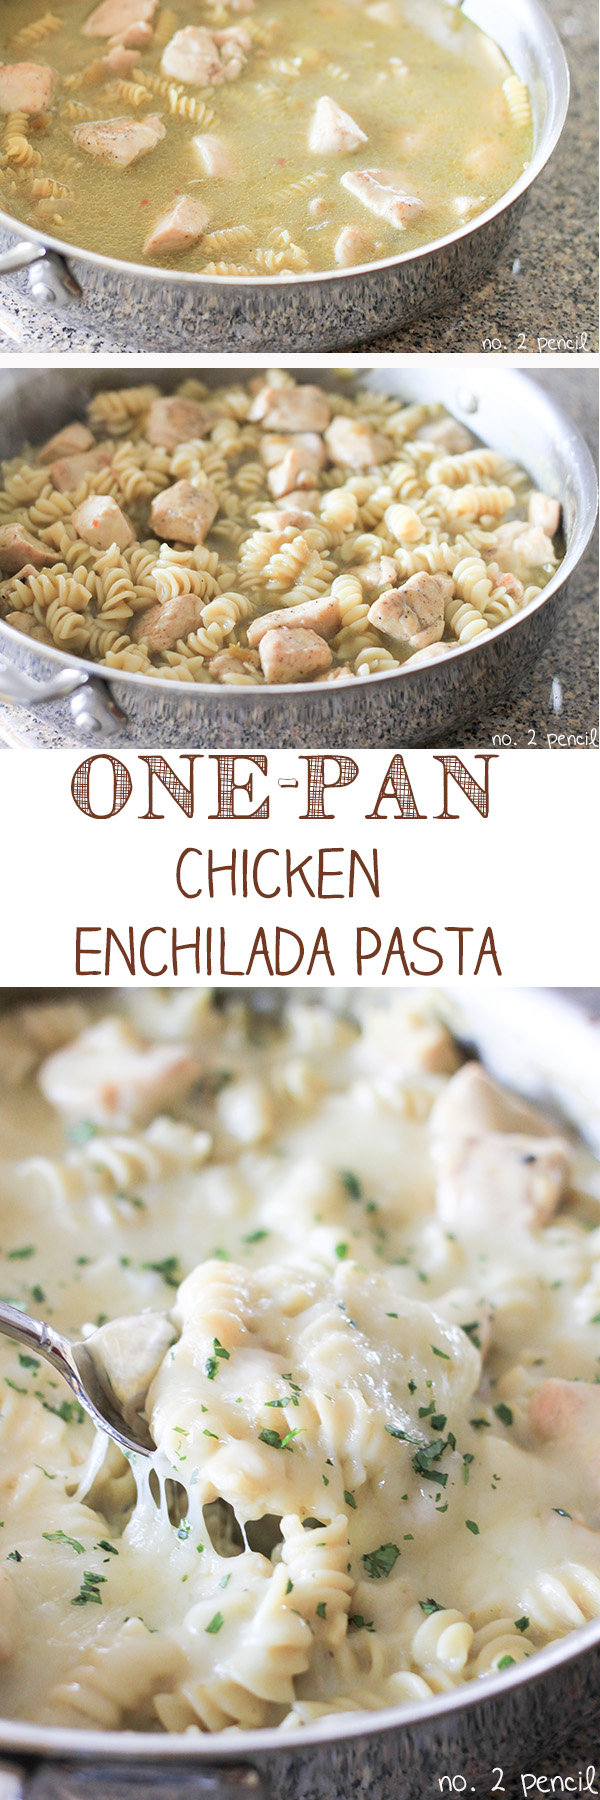 One-Pan Chicken Enchilada Pasta